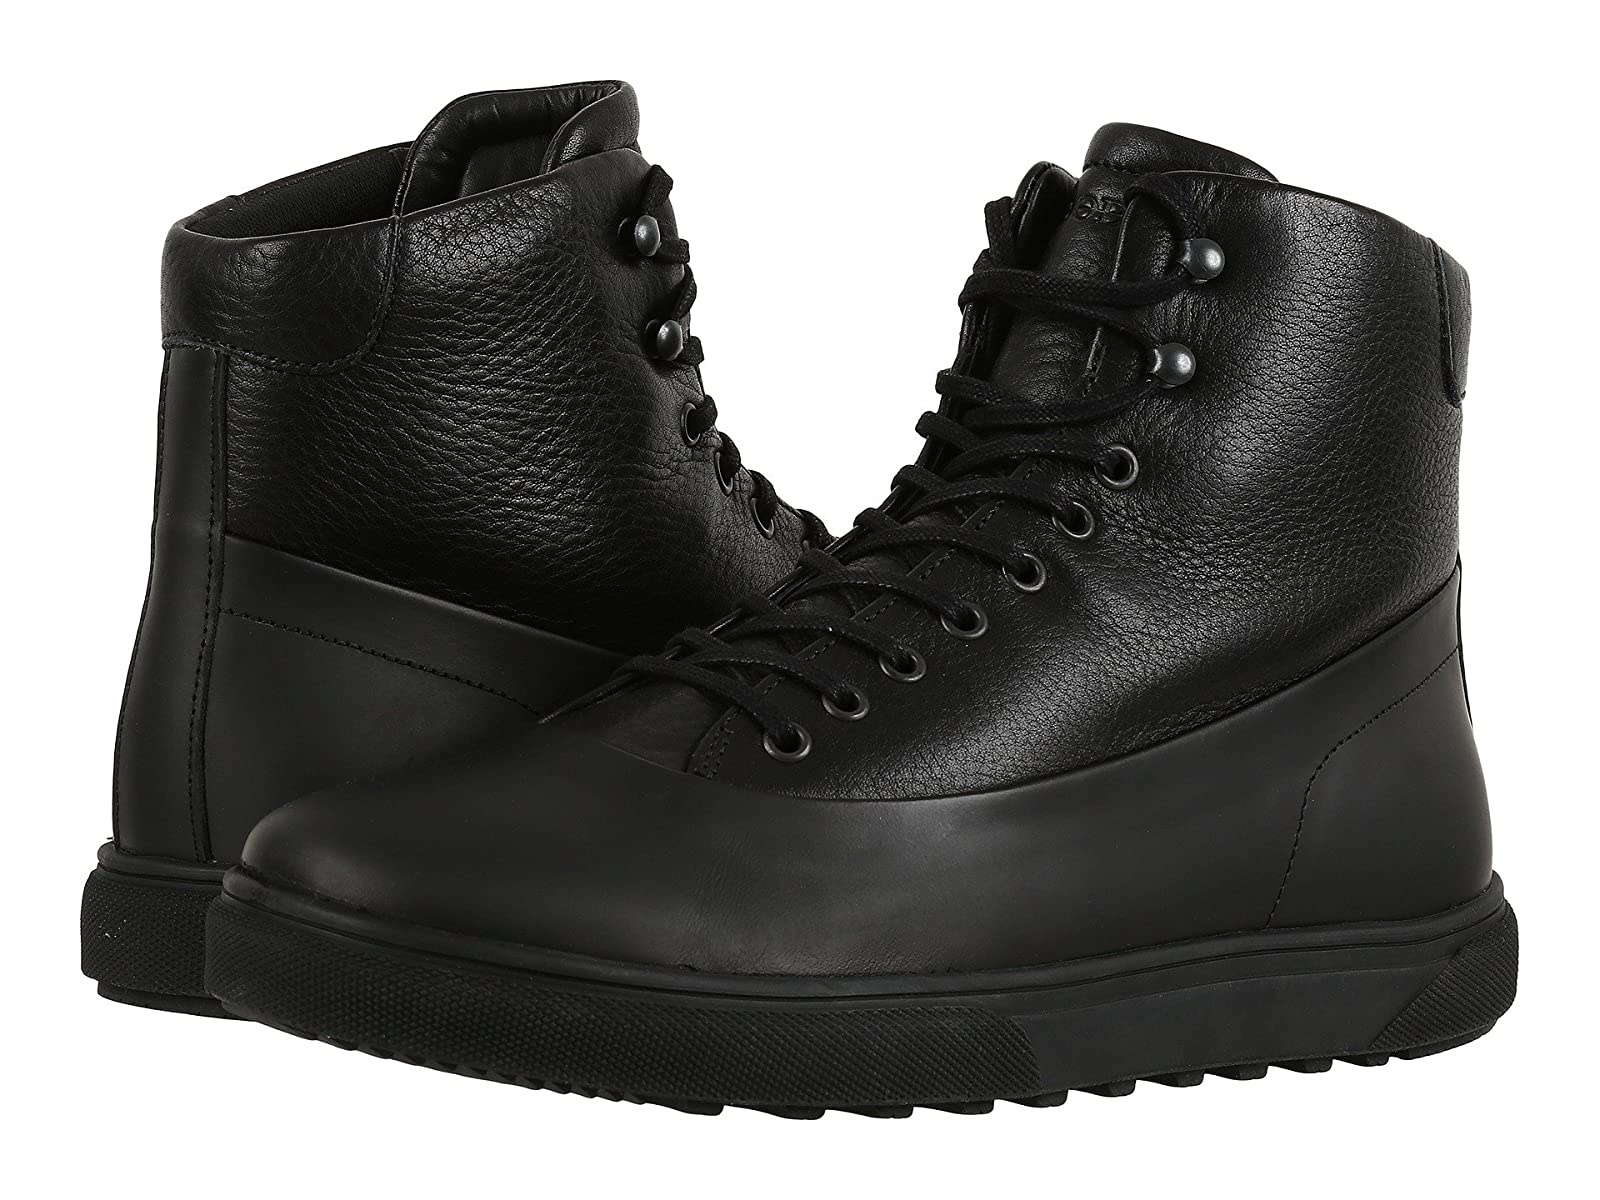 HOOD Rubber Company WaylandCheap and distinctive eye-catching shoes